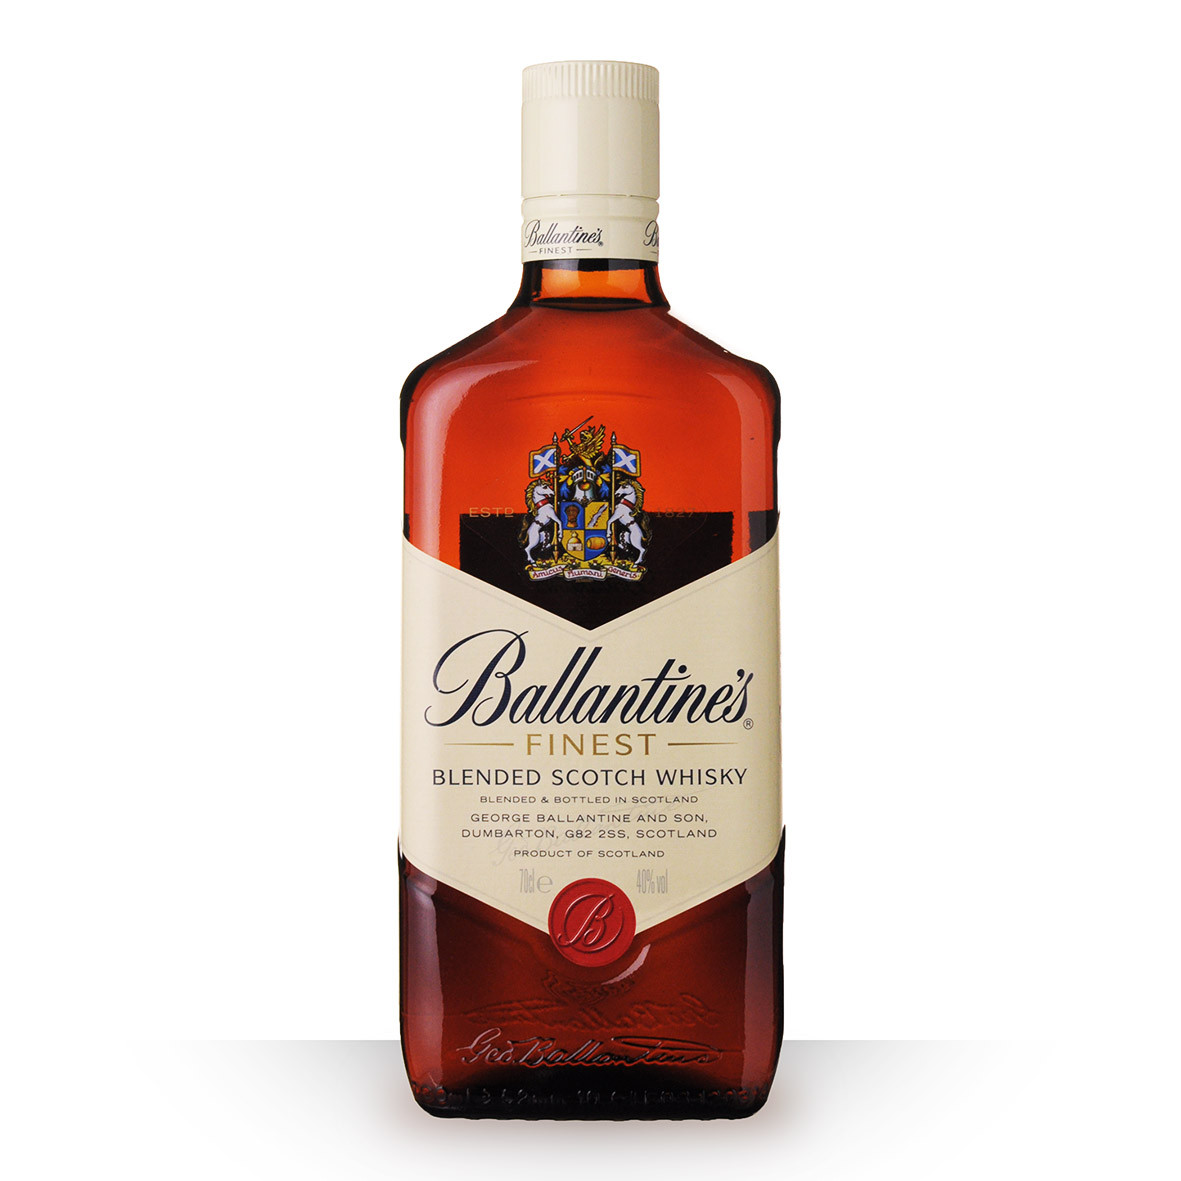 Whisky Ballantines Finest 70cl www.odyssee-vins.com